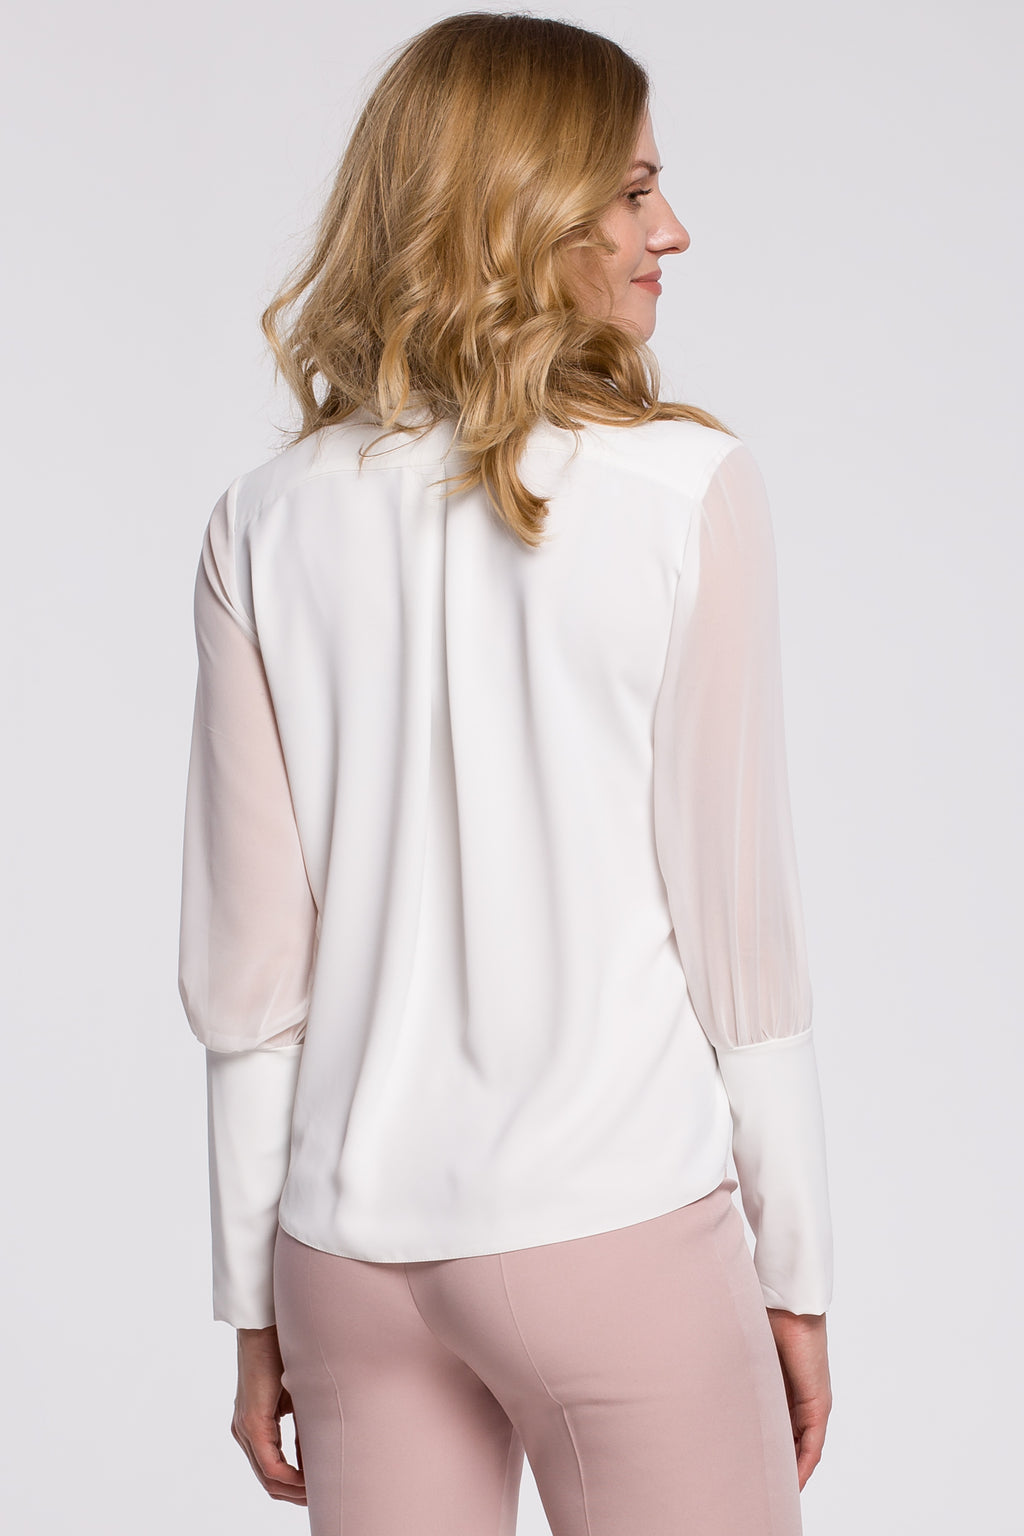 Ecru Chiffon Blouse With Long See Through Sleeves - So Chic Boutique